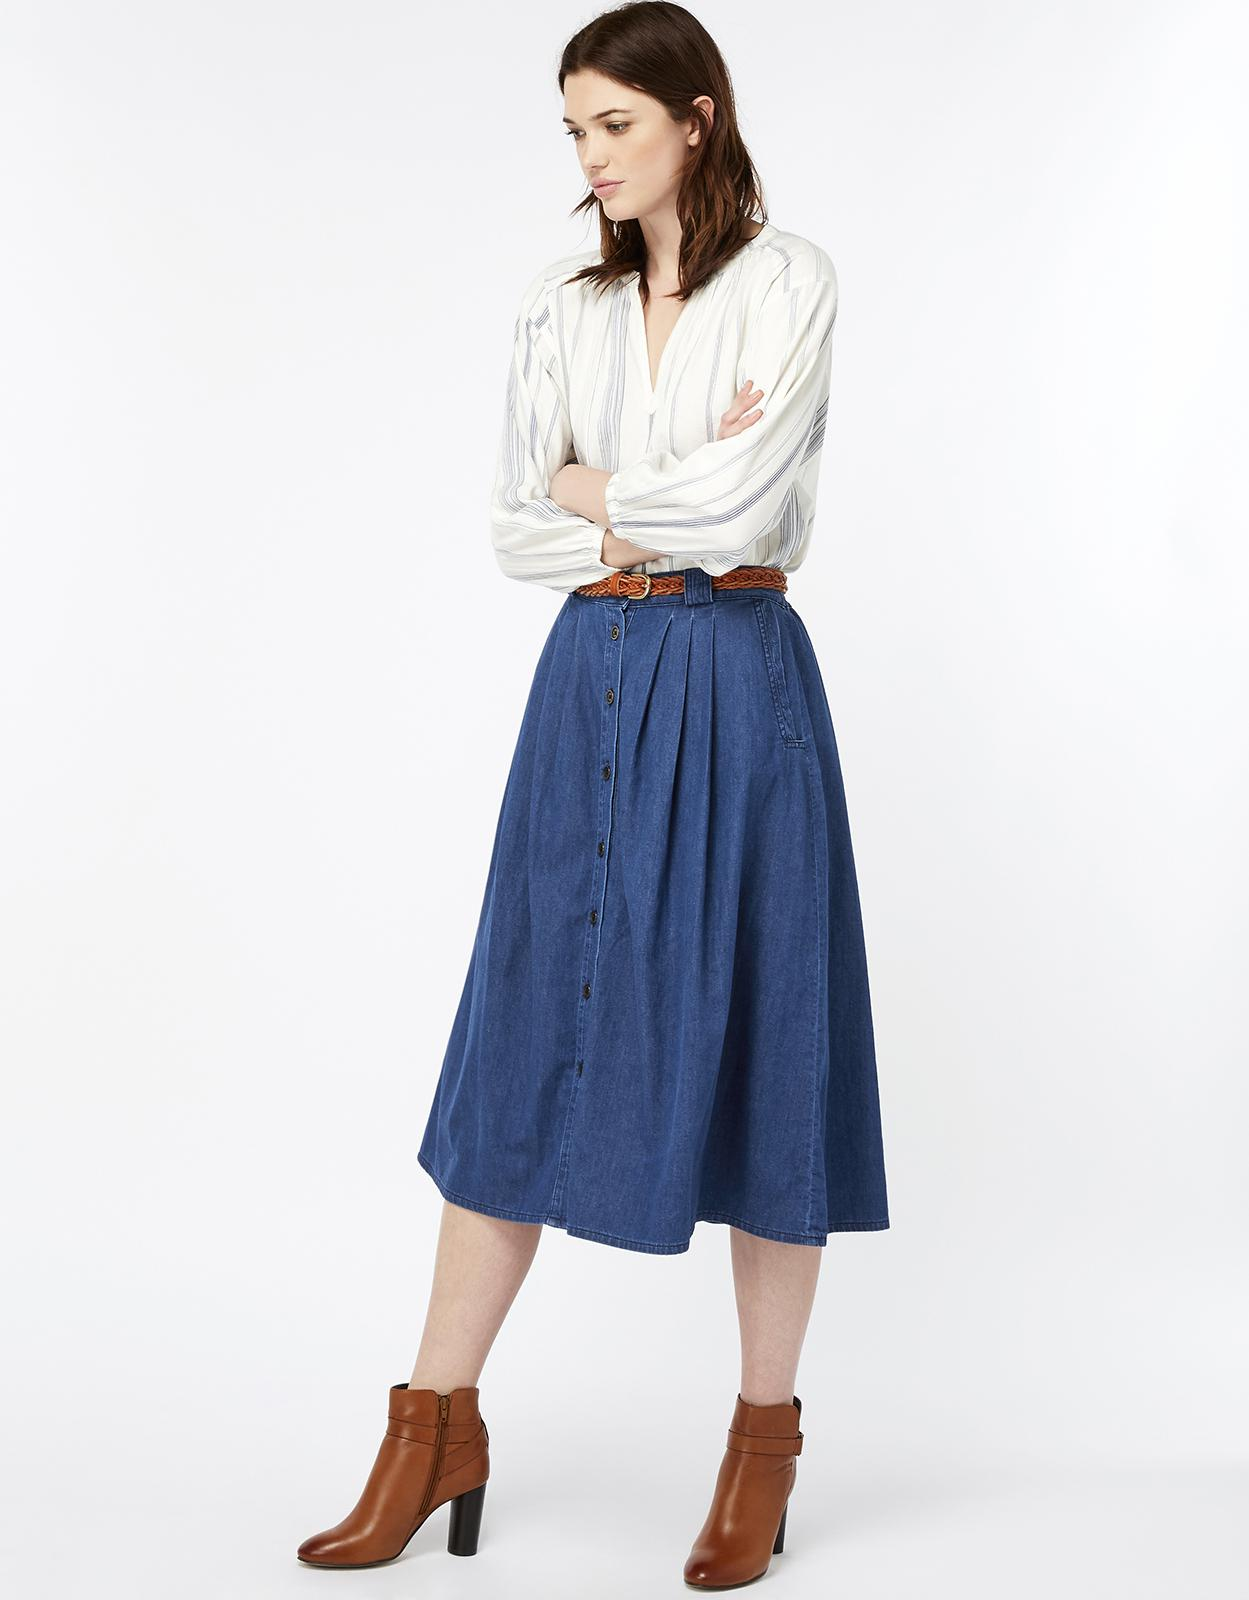 1f347a5899 Gallery. Previously sold at: Monsoon · Women's Denim Skirts